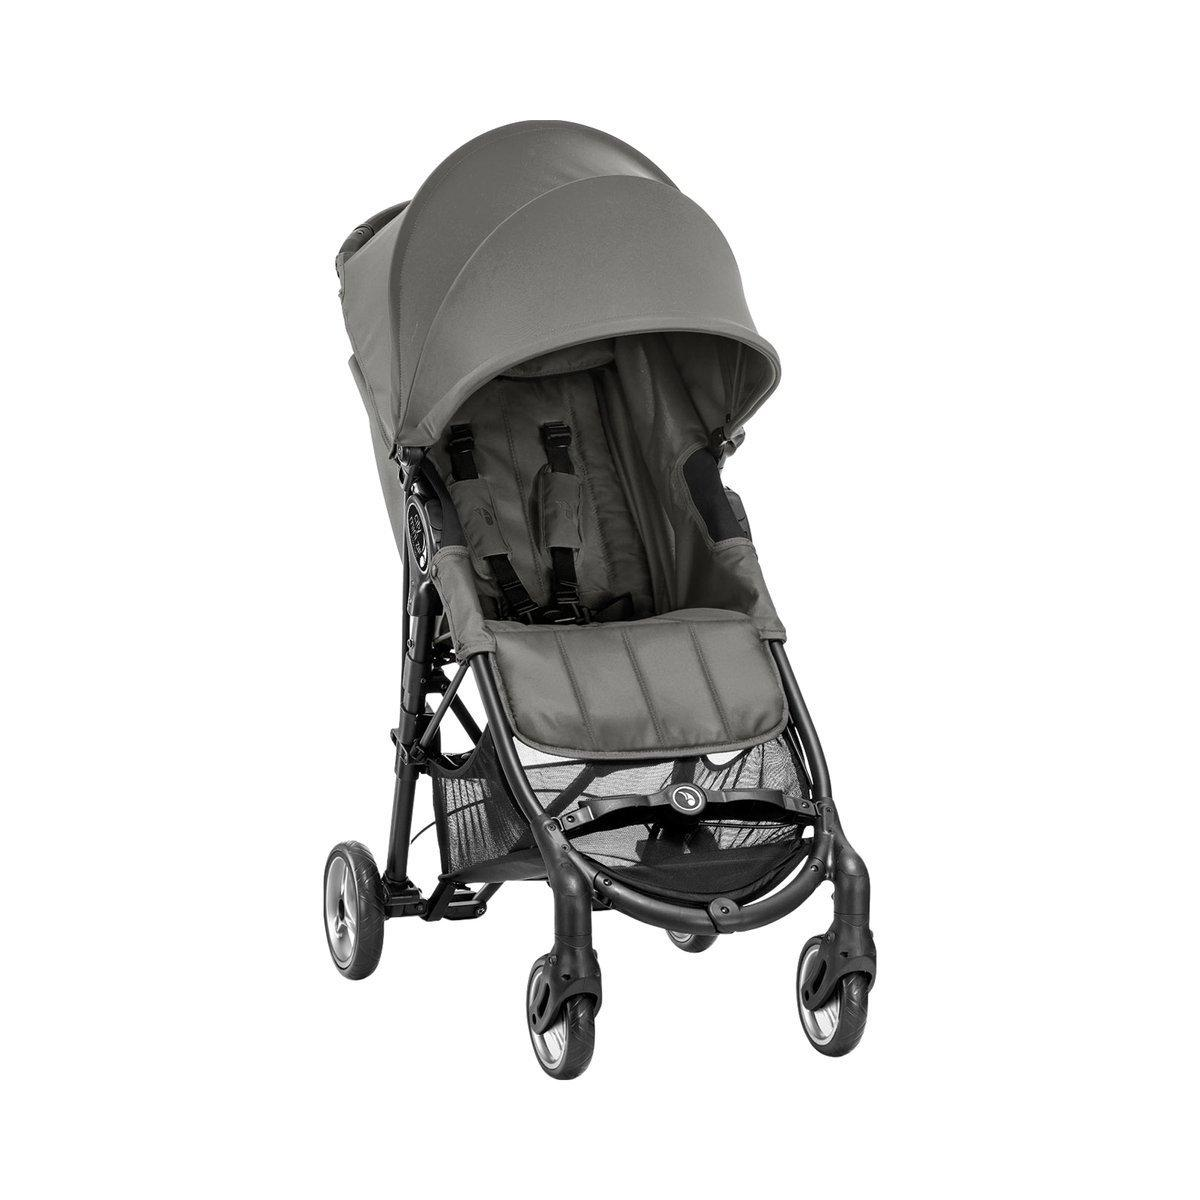 Baby Jogger City Mini ZIP - Silla de paseo, color gris